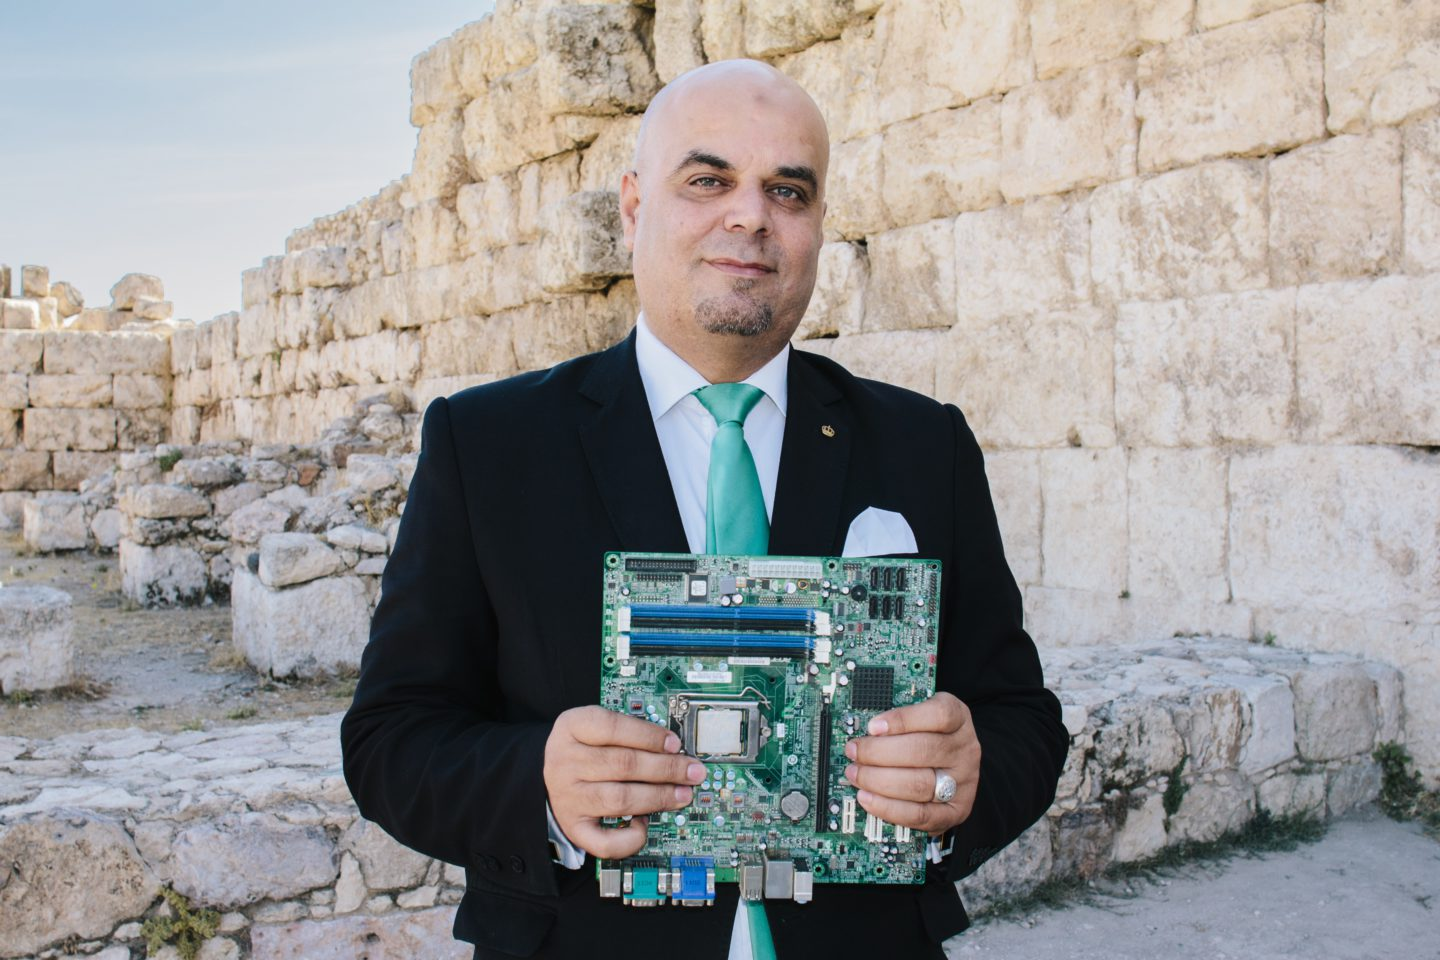 This Jordanian entrepreneur wants to recycle the most hazardous materials in a mostly digital age | The Switchers